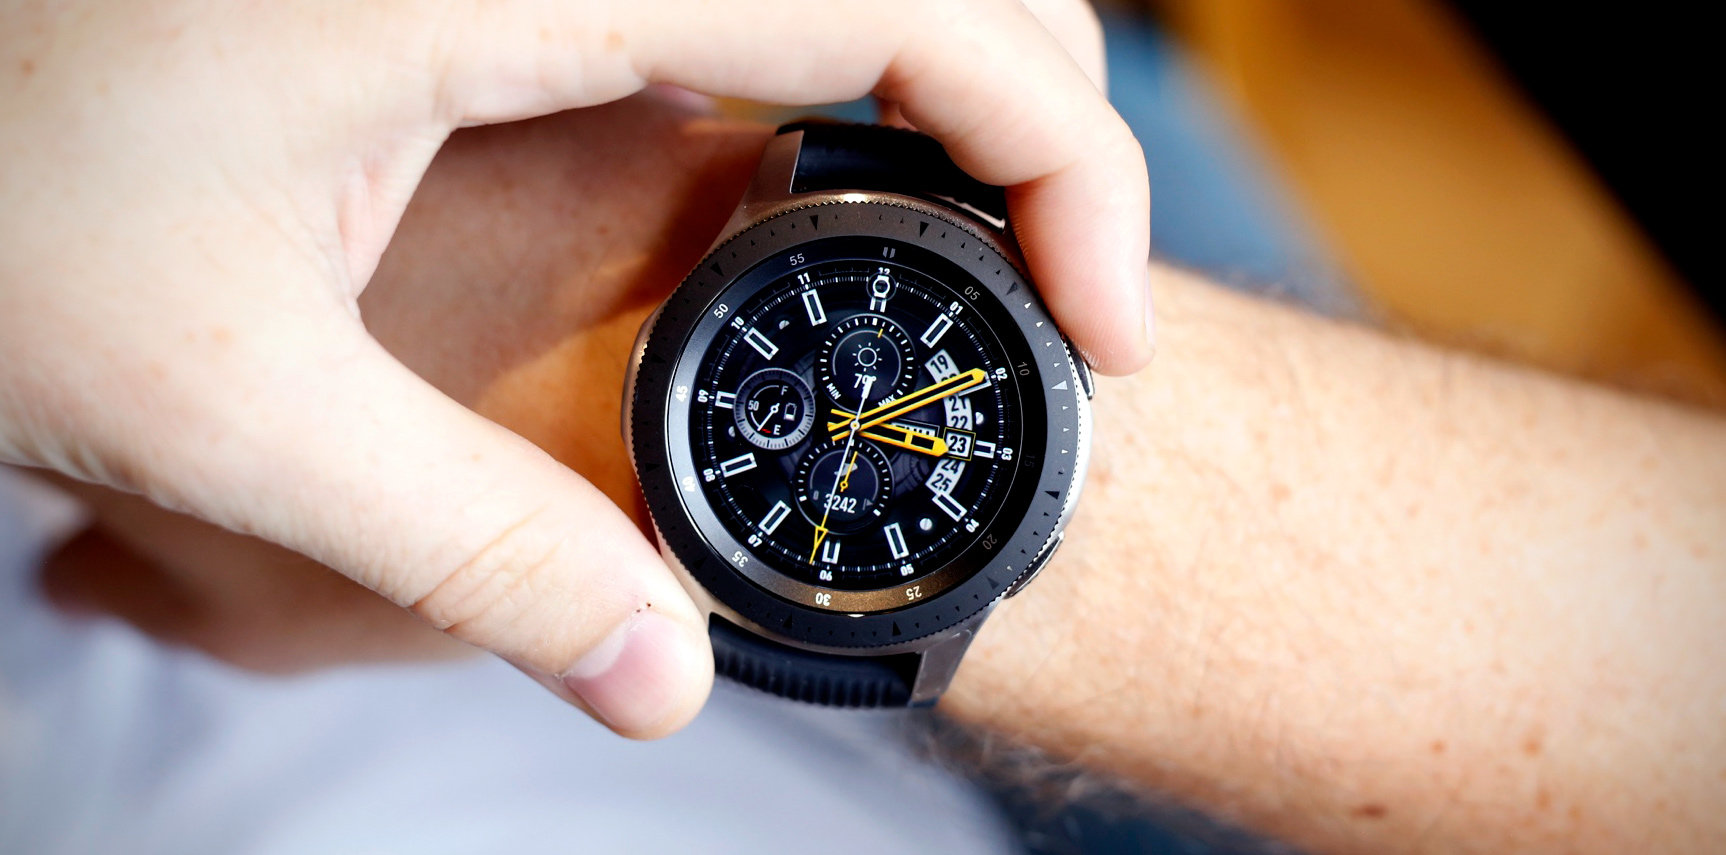 Samsung Galaxy Watch review: Good battery life, packed with features